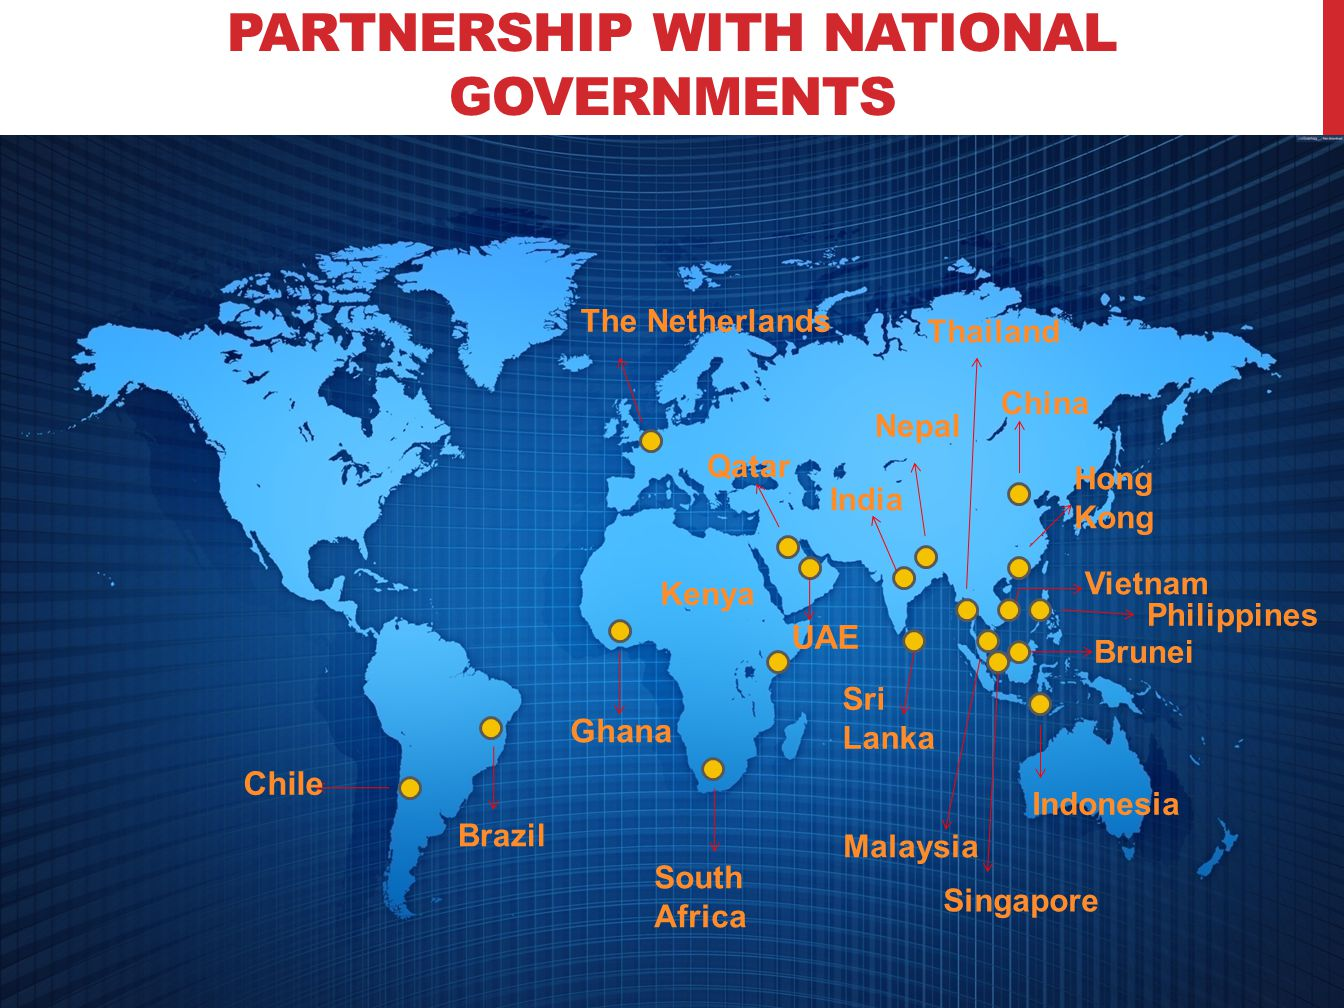 PARTNERSHIP WITH NATIONAL GOVERNMENTS UAE Qatar Nepal Sri Lanka The Netherlands South Africa Brazil India Indonesia Singapore Malaysia China Hong Kong Thailand Brunei Vietnam Philippines Chile Kenya Ghana